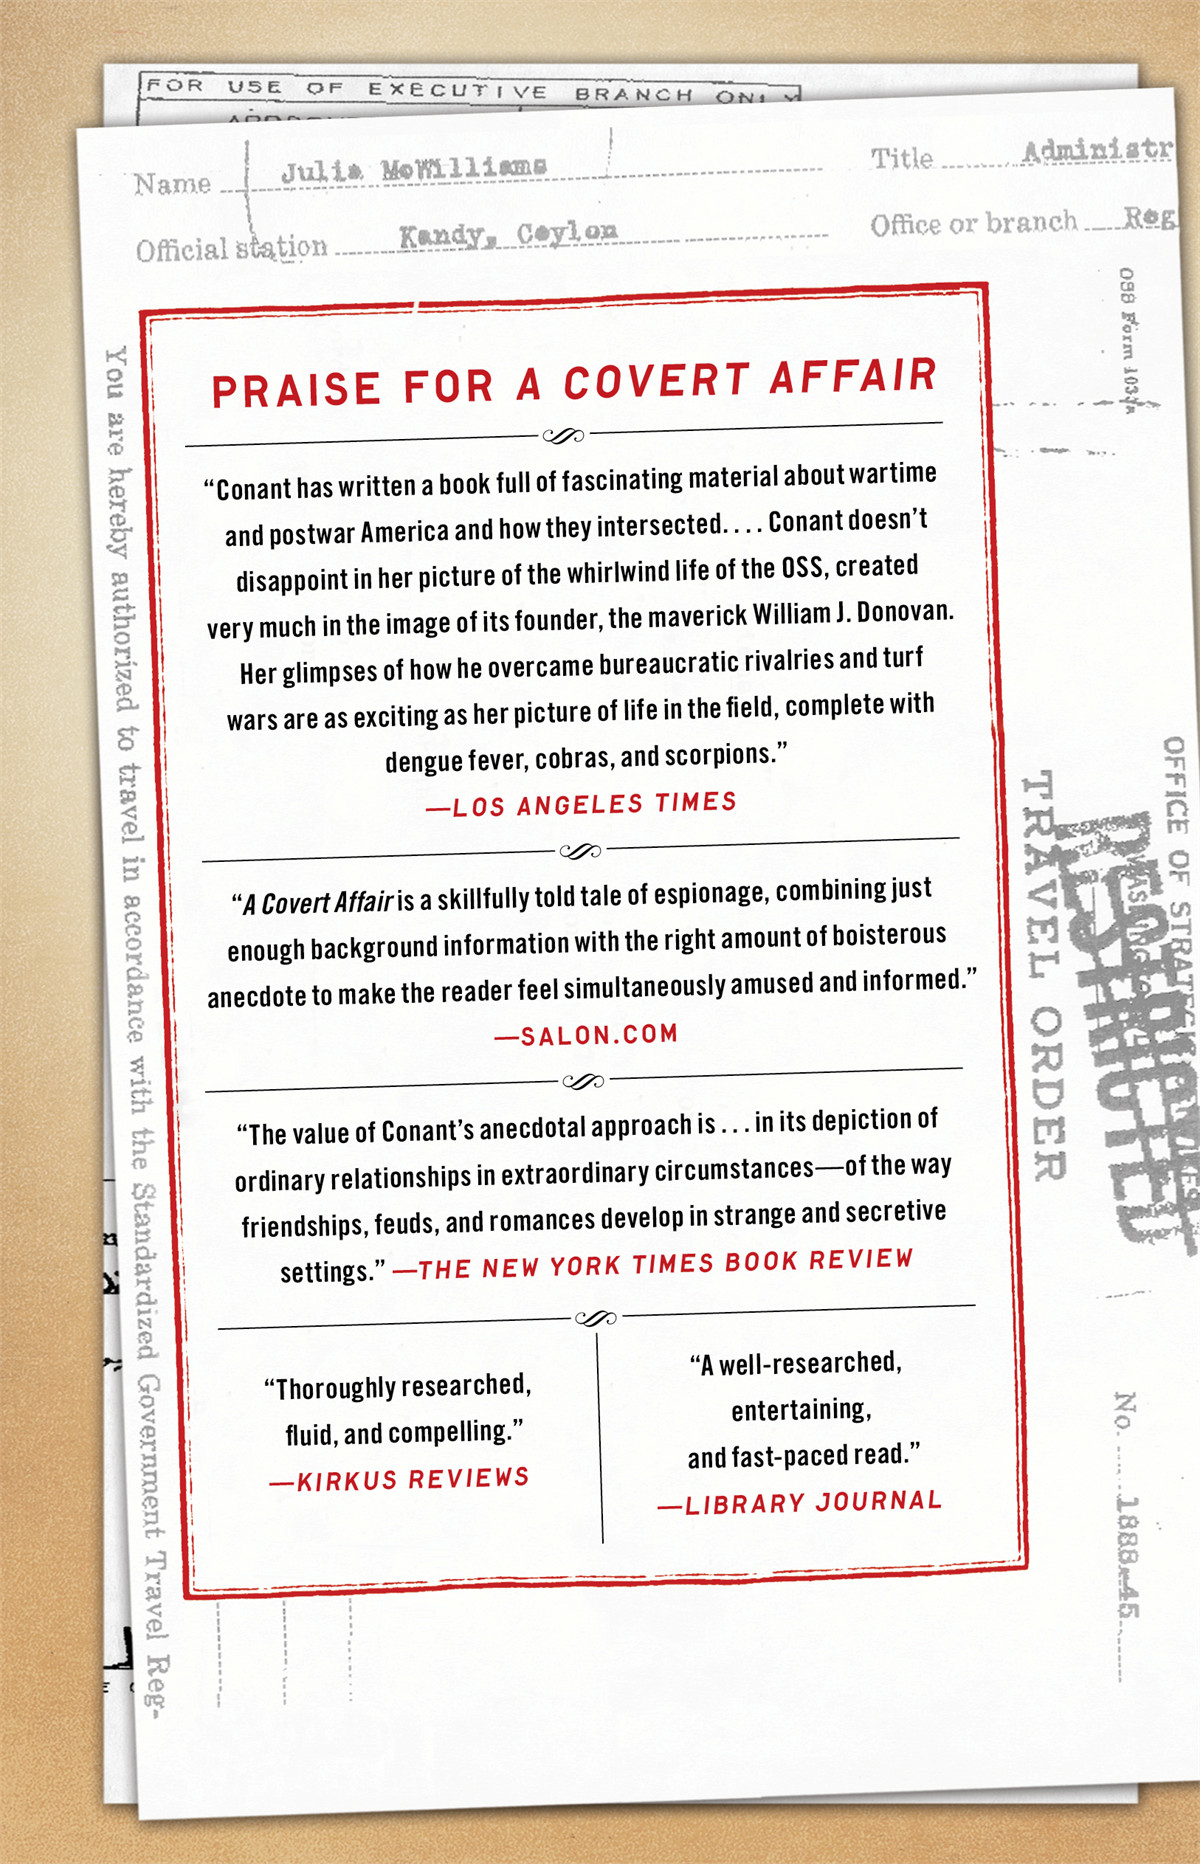 A-covert-affair-9781439163535.in02